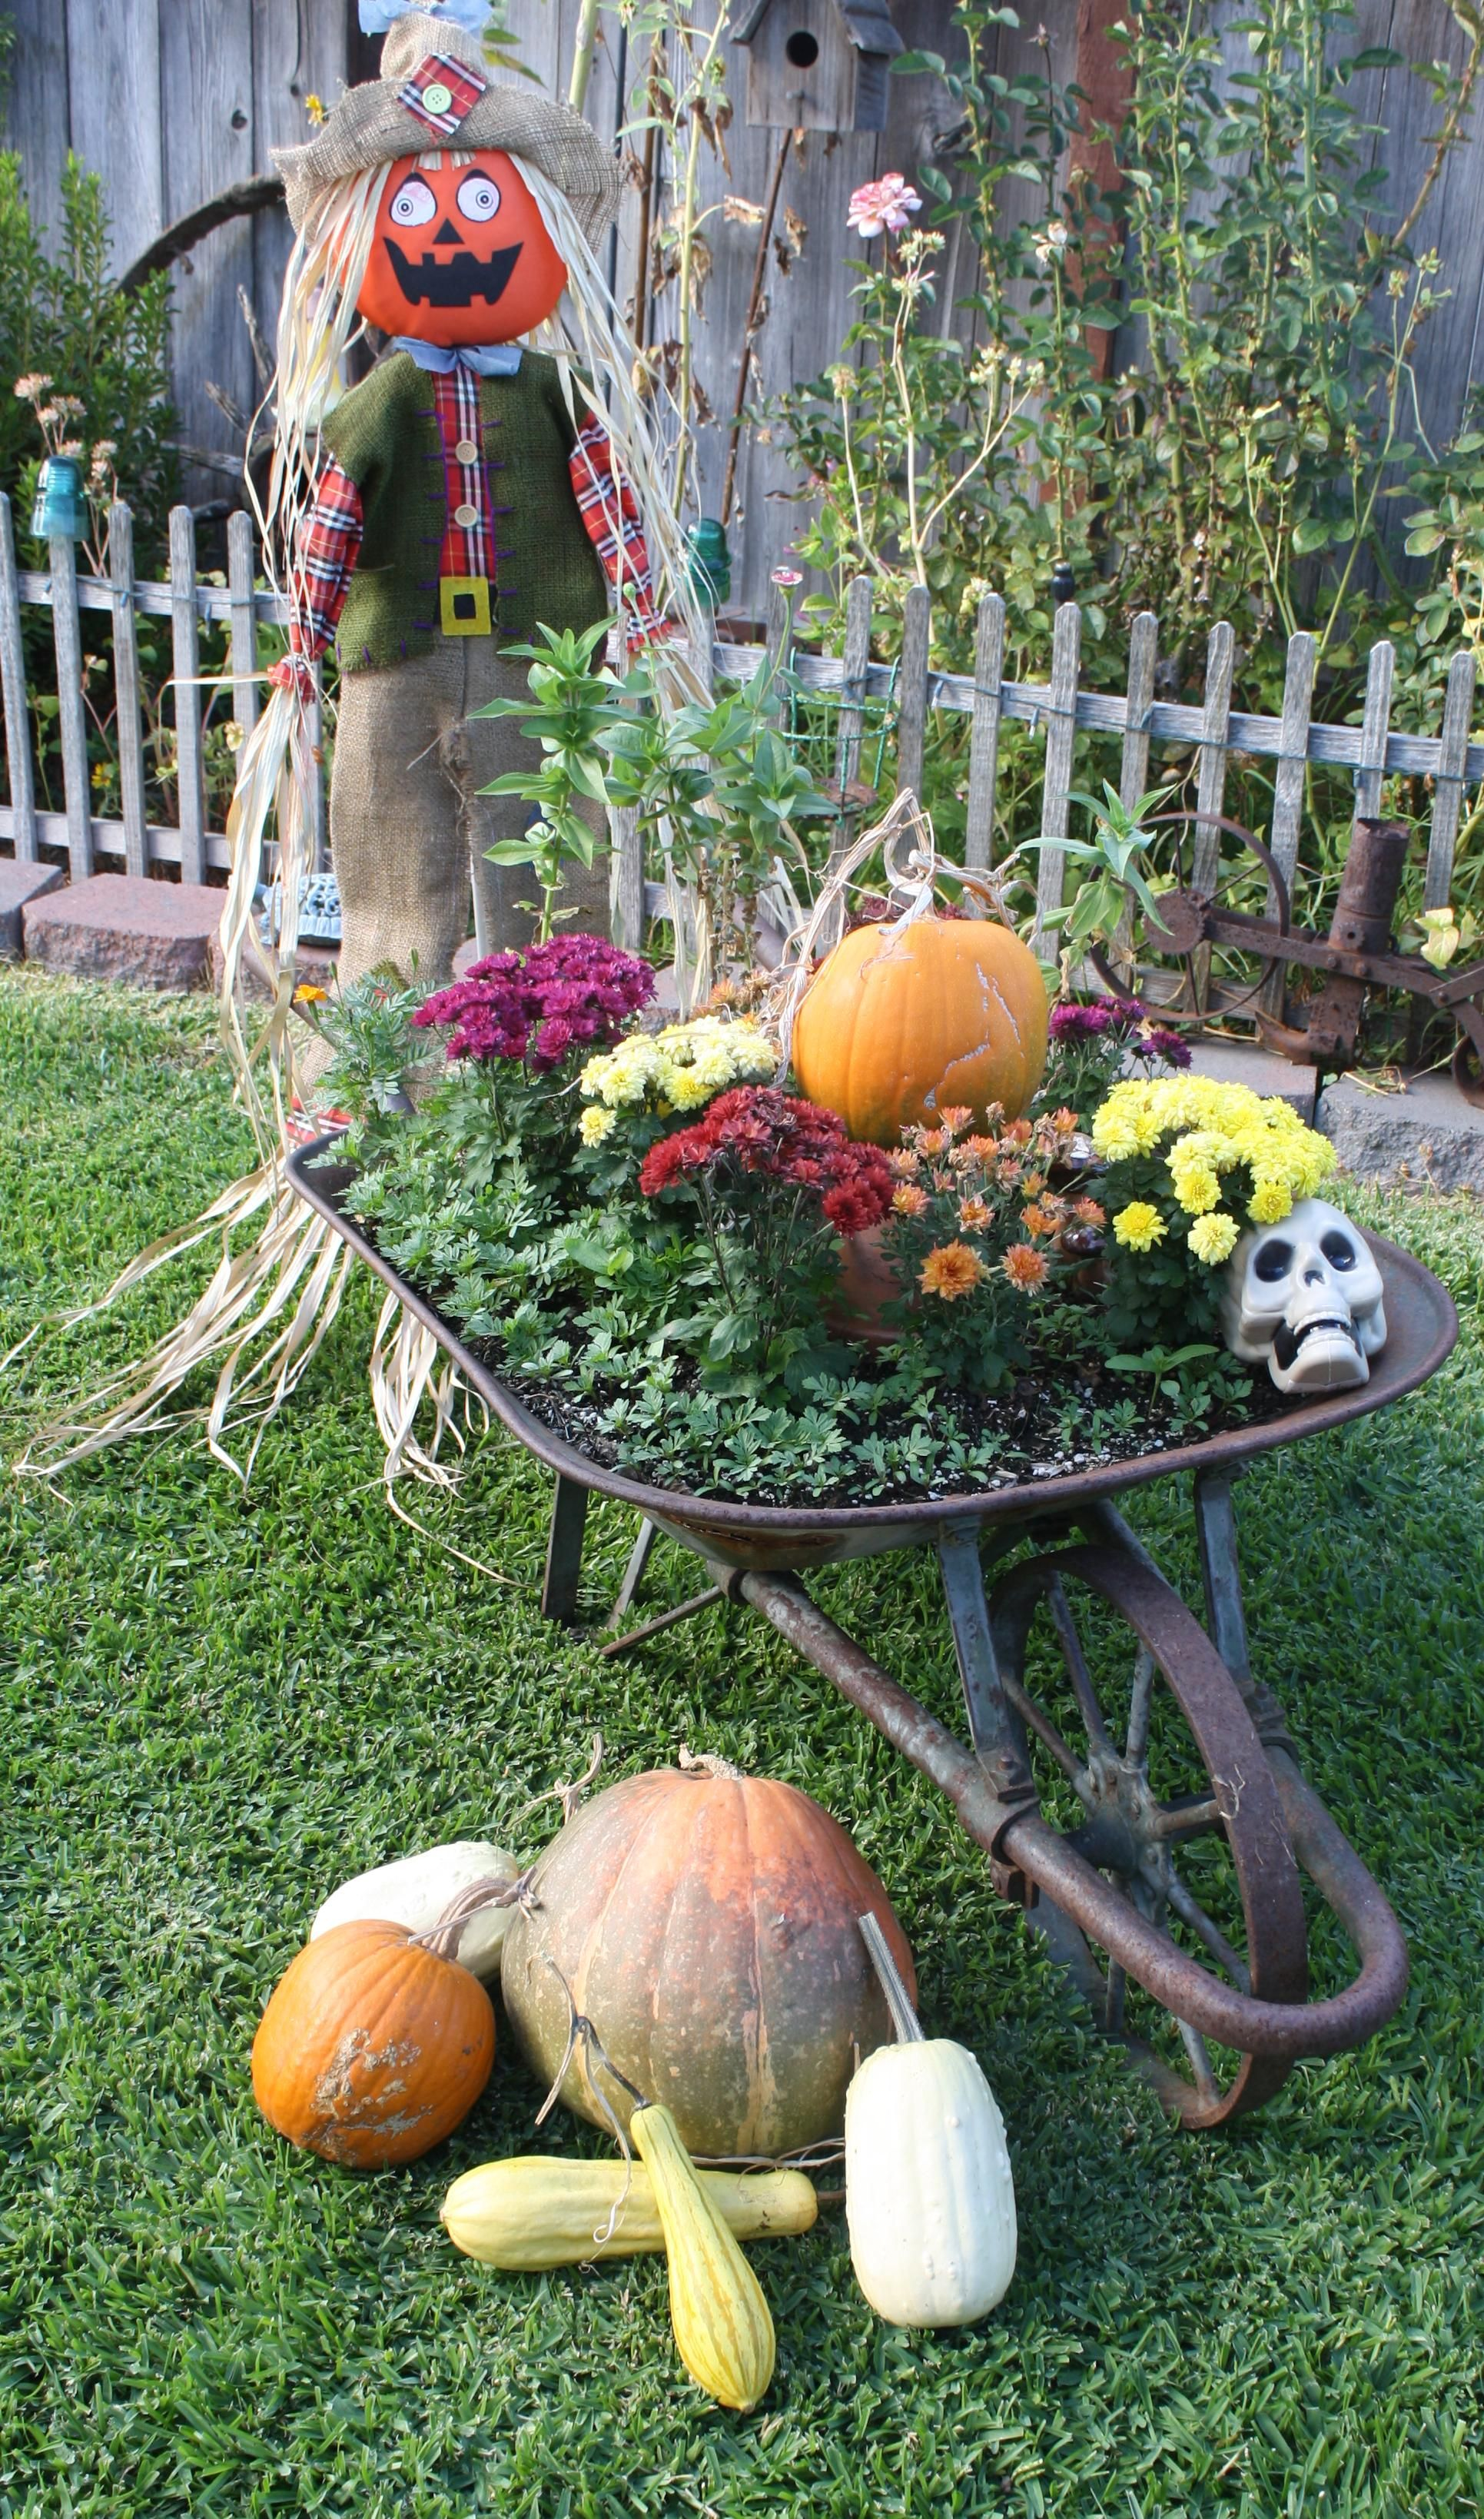 Cute Funny Scarecrow With A Wheel Barrel Pumpkins And Gourds